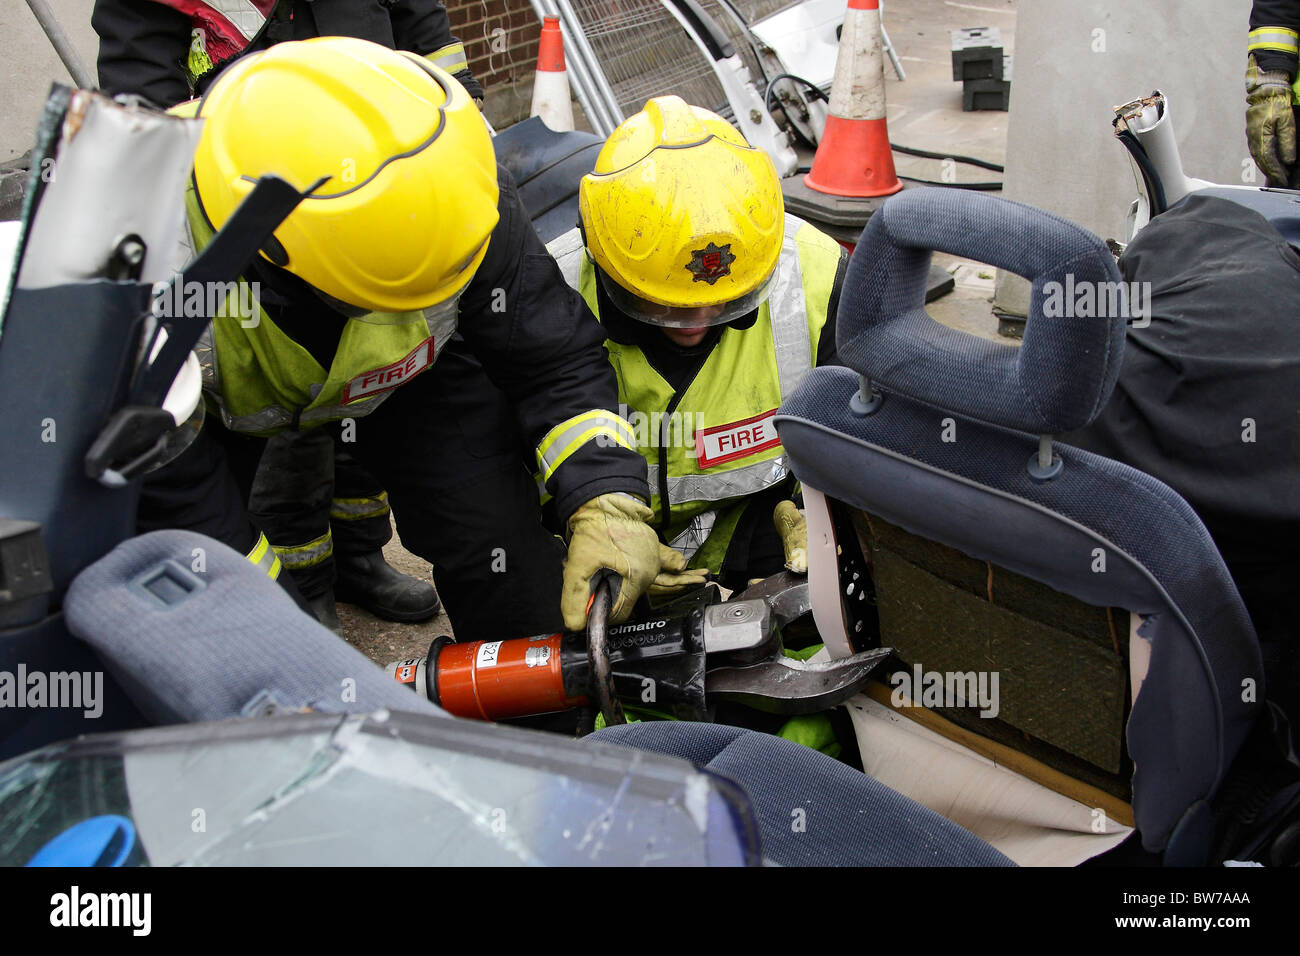 Firefighters using Holmatro rescue tools Stock Photo: 32738562 - Alamy